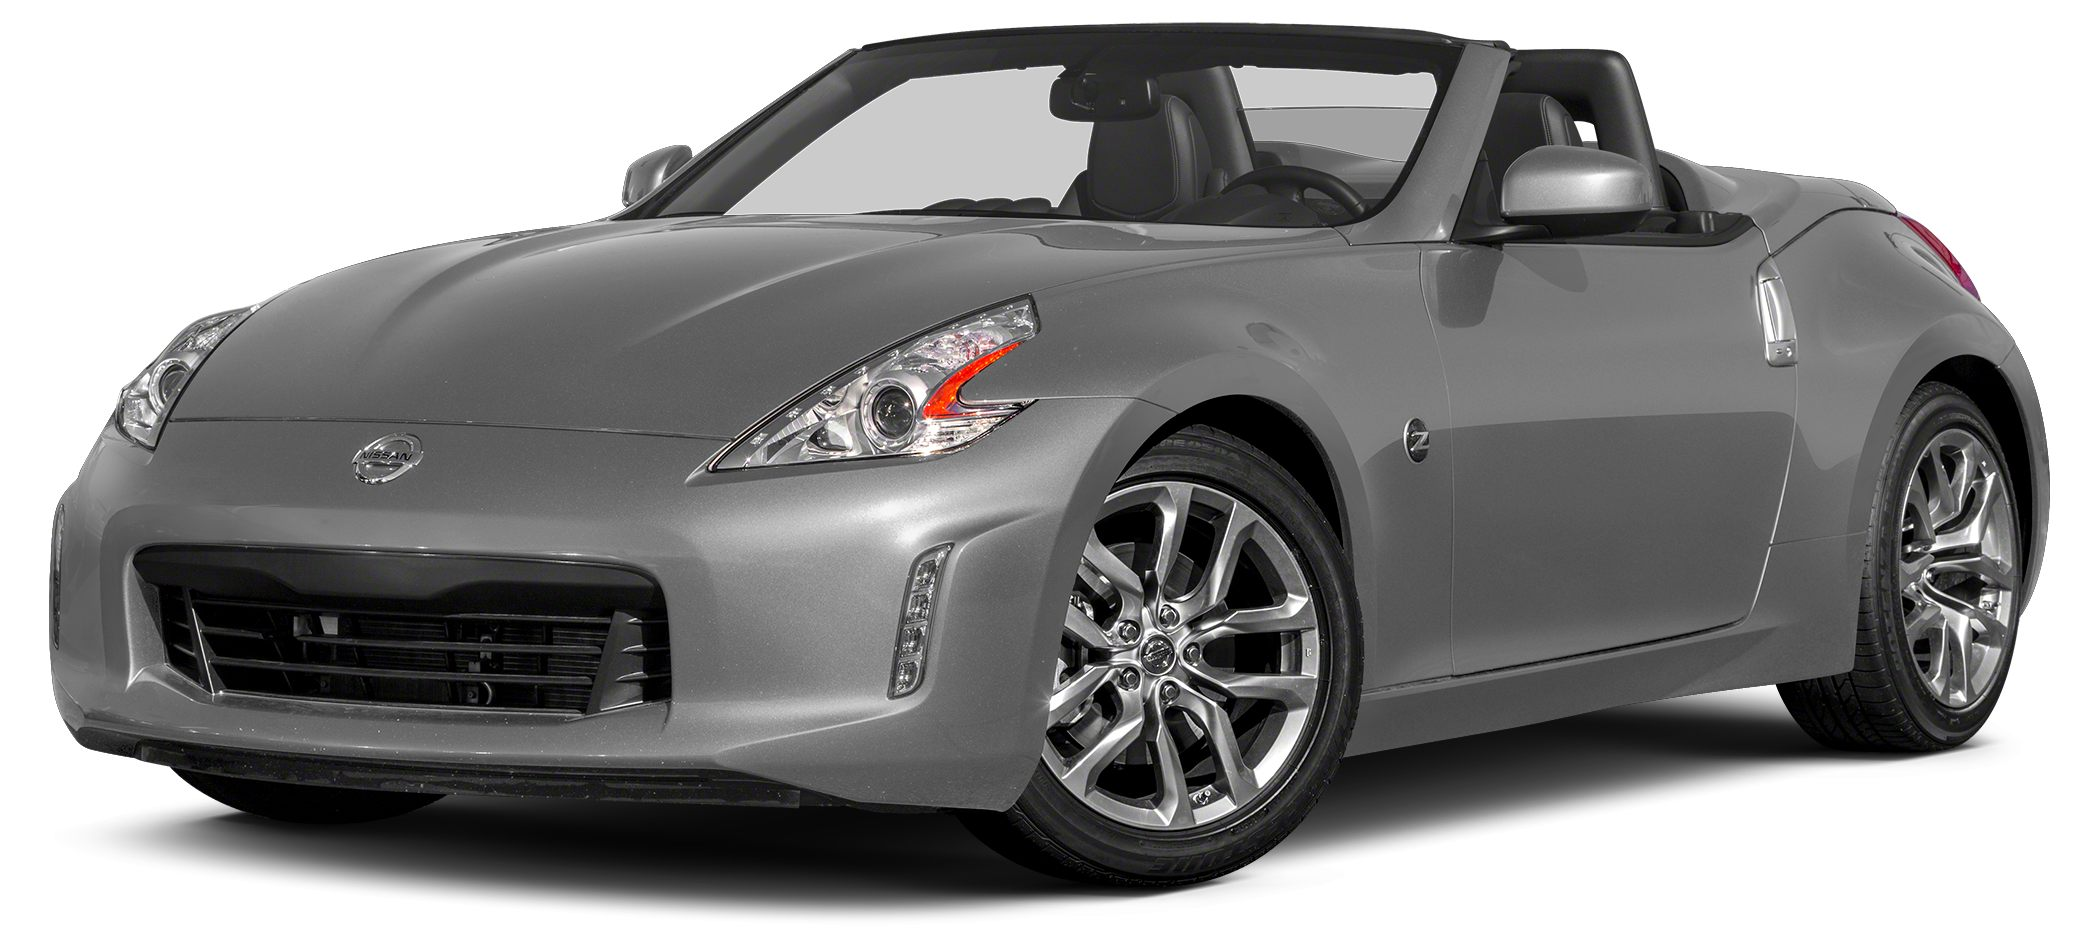 2013 Nissan 370Z Touring HARD TO FIND TOURING 370Z WITH A STICK SHIFT AND ITS CERTIFIED TOO SPOI